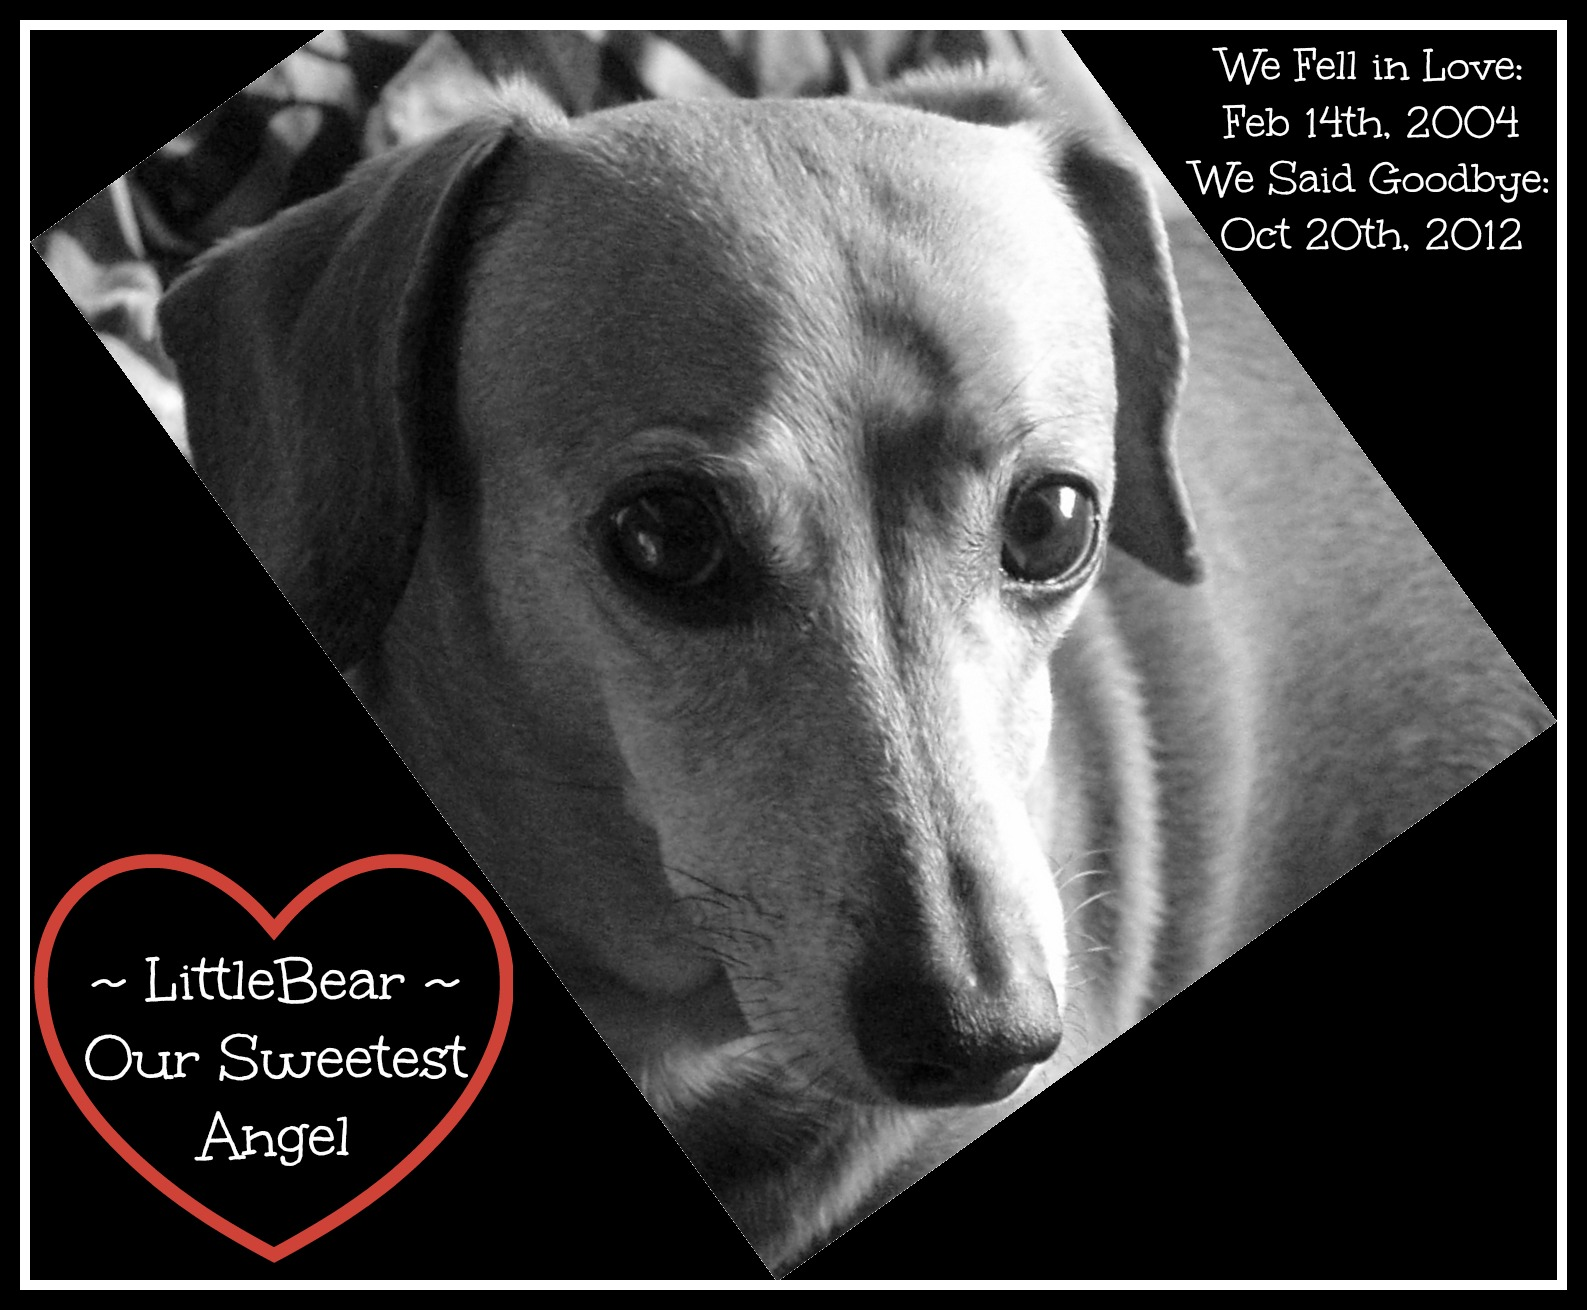 LittleBear - We Miss You More Than Words Can Say